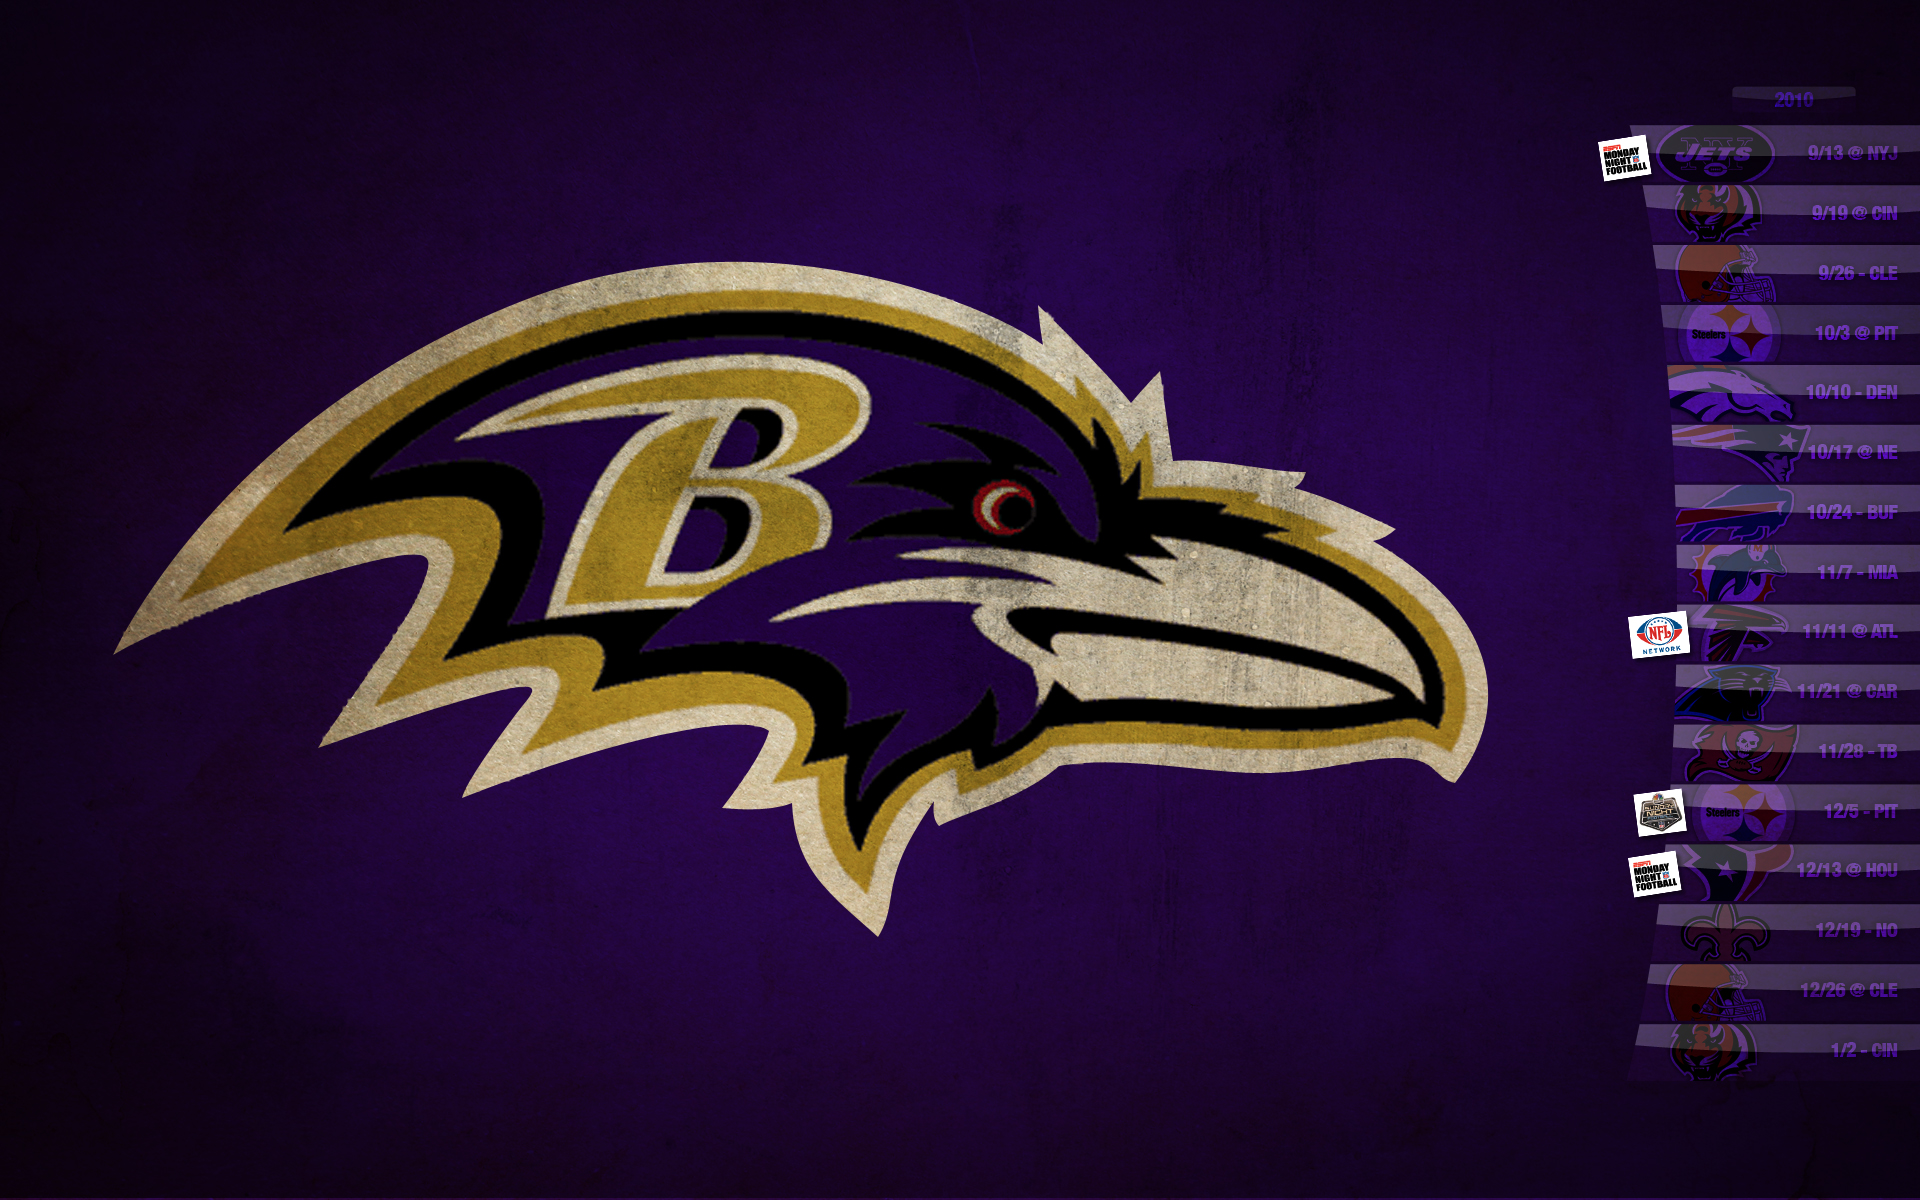 Baltimore Ravens wallpaper desktop image Baltimore Ravens wallpapers 1920x1200